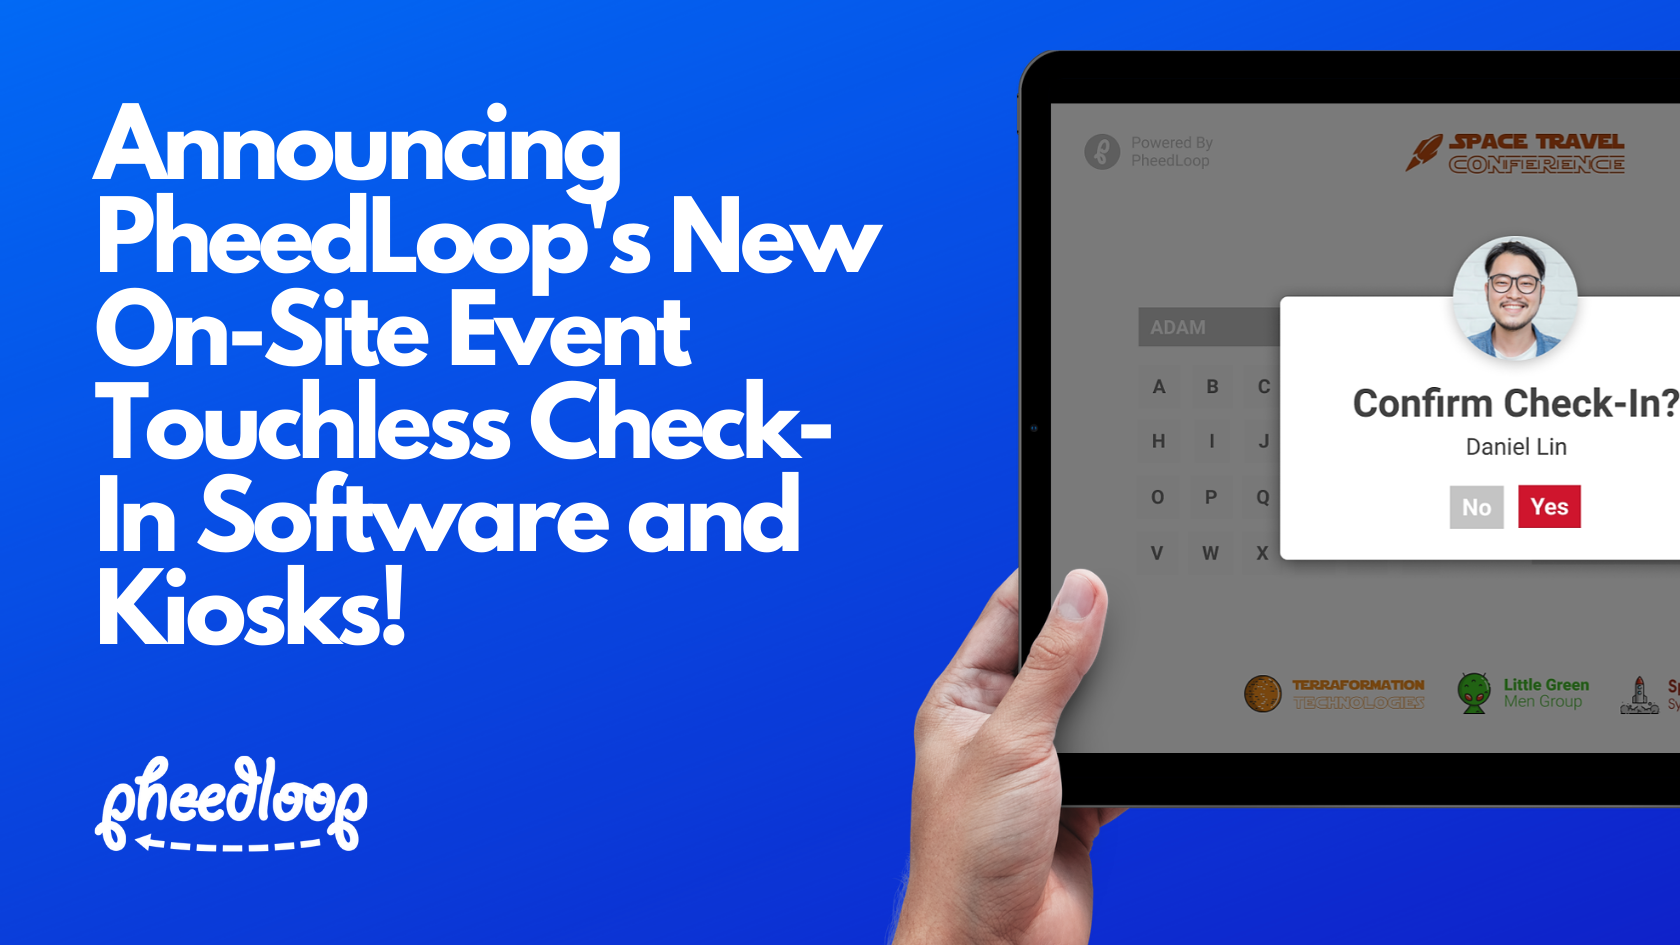 Announcing PheedLoop's New On-Site Event Touchless Check-In Software and Kiosks!